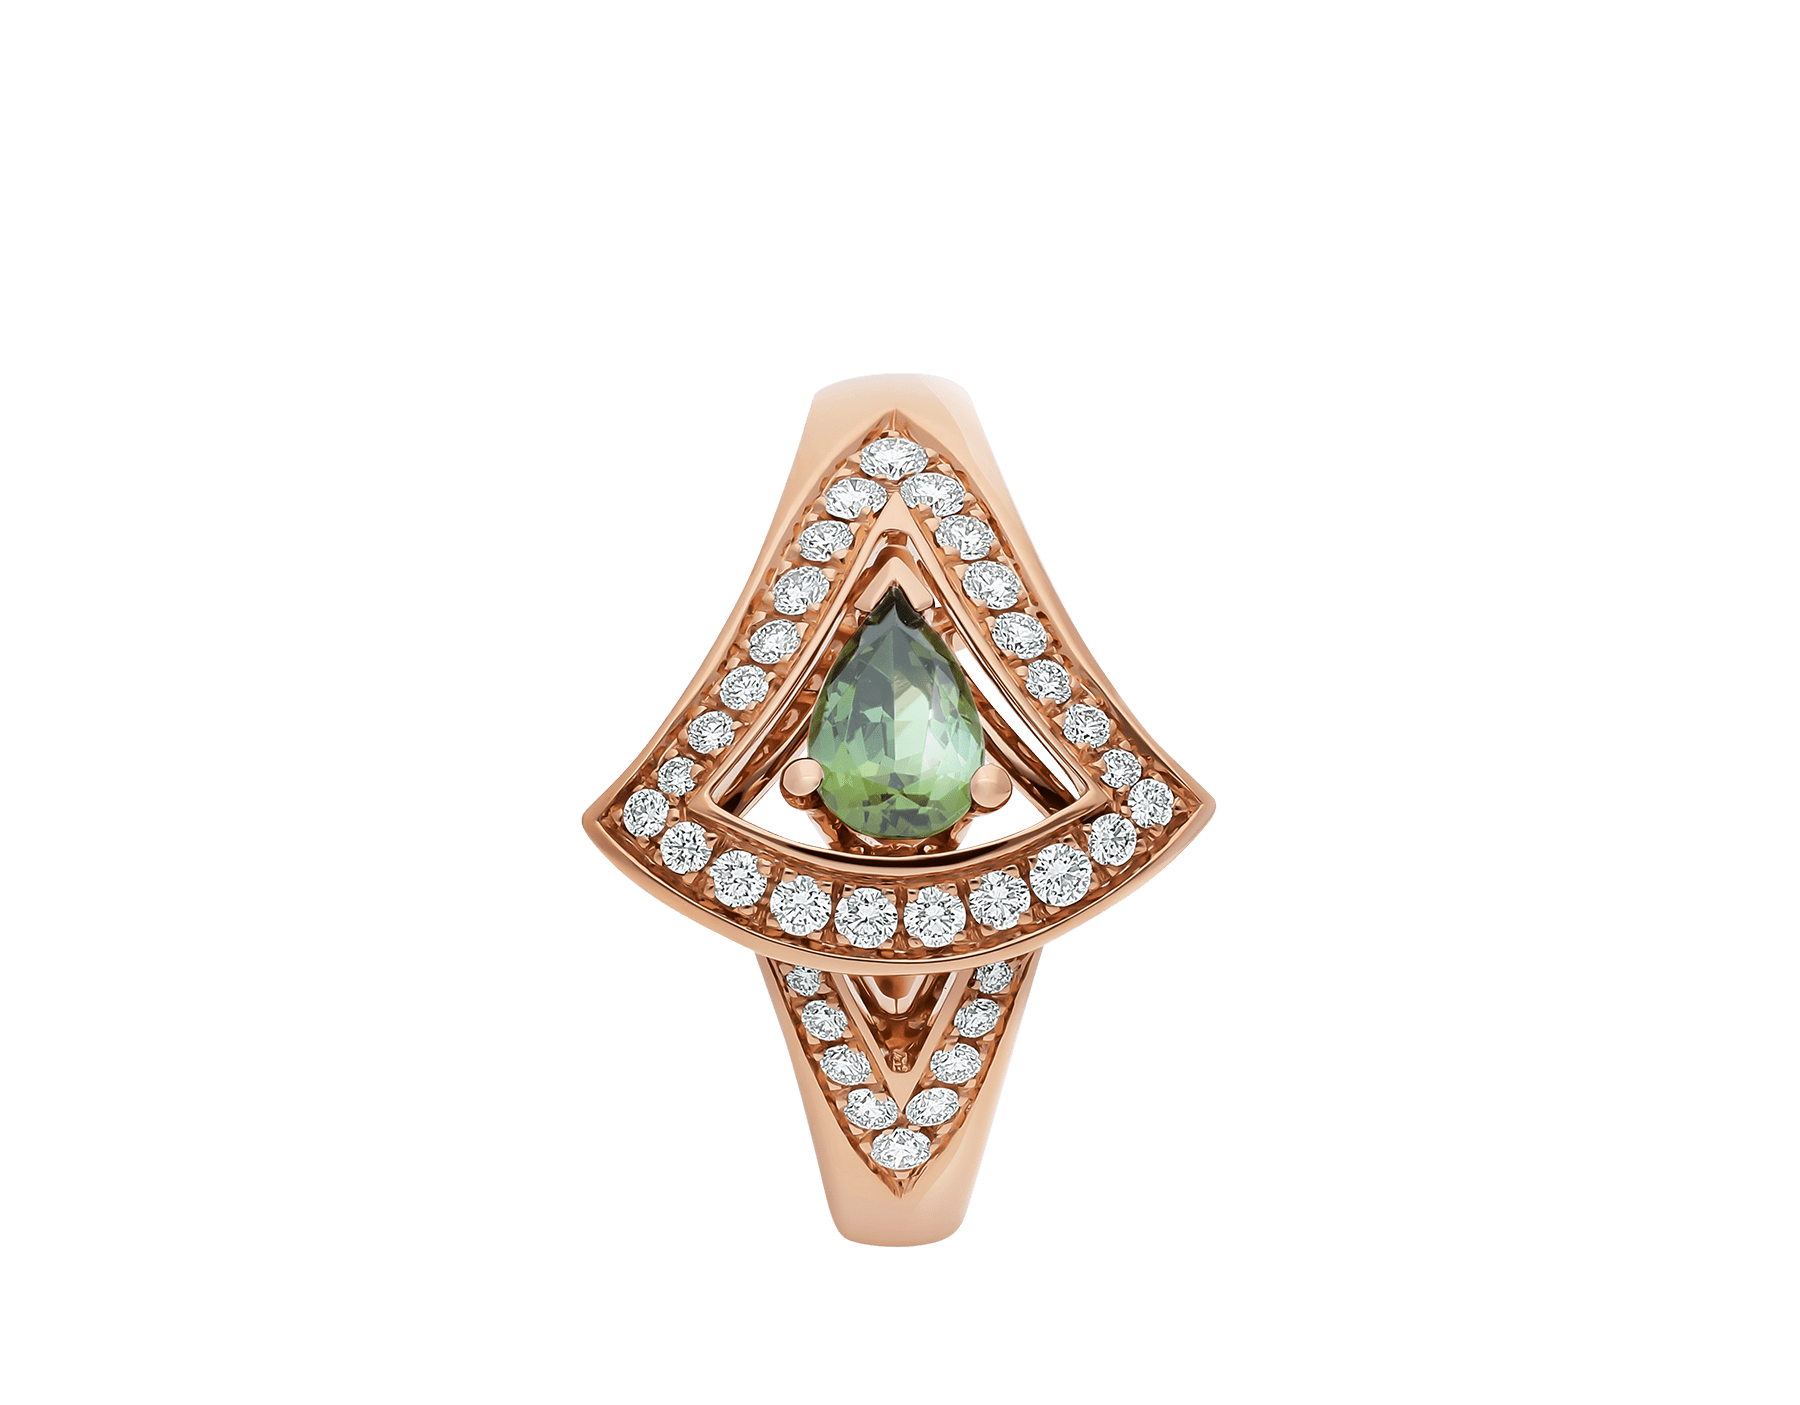 DIVAS' DREAM 18 kt rose gold ring set with a green tourmaline and pavé diamonds AN858508 image 2